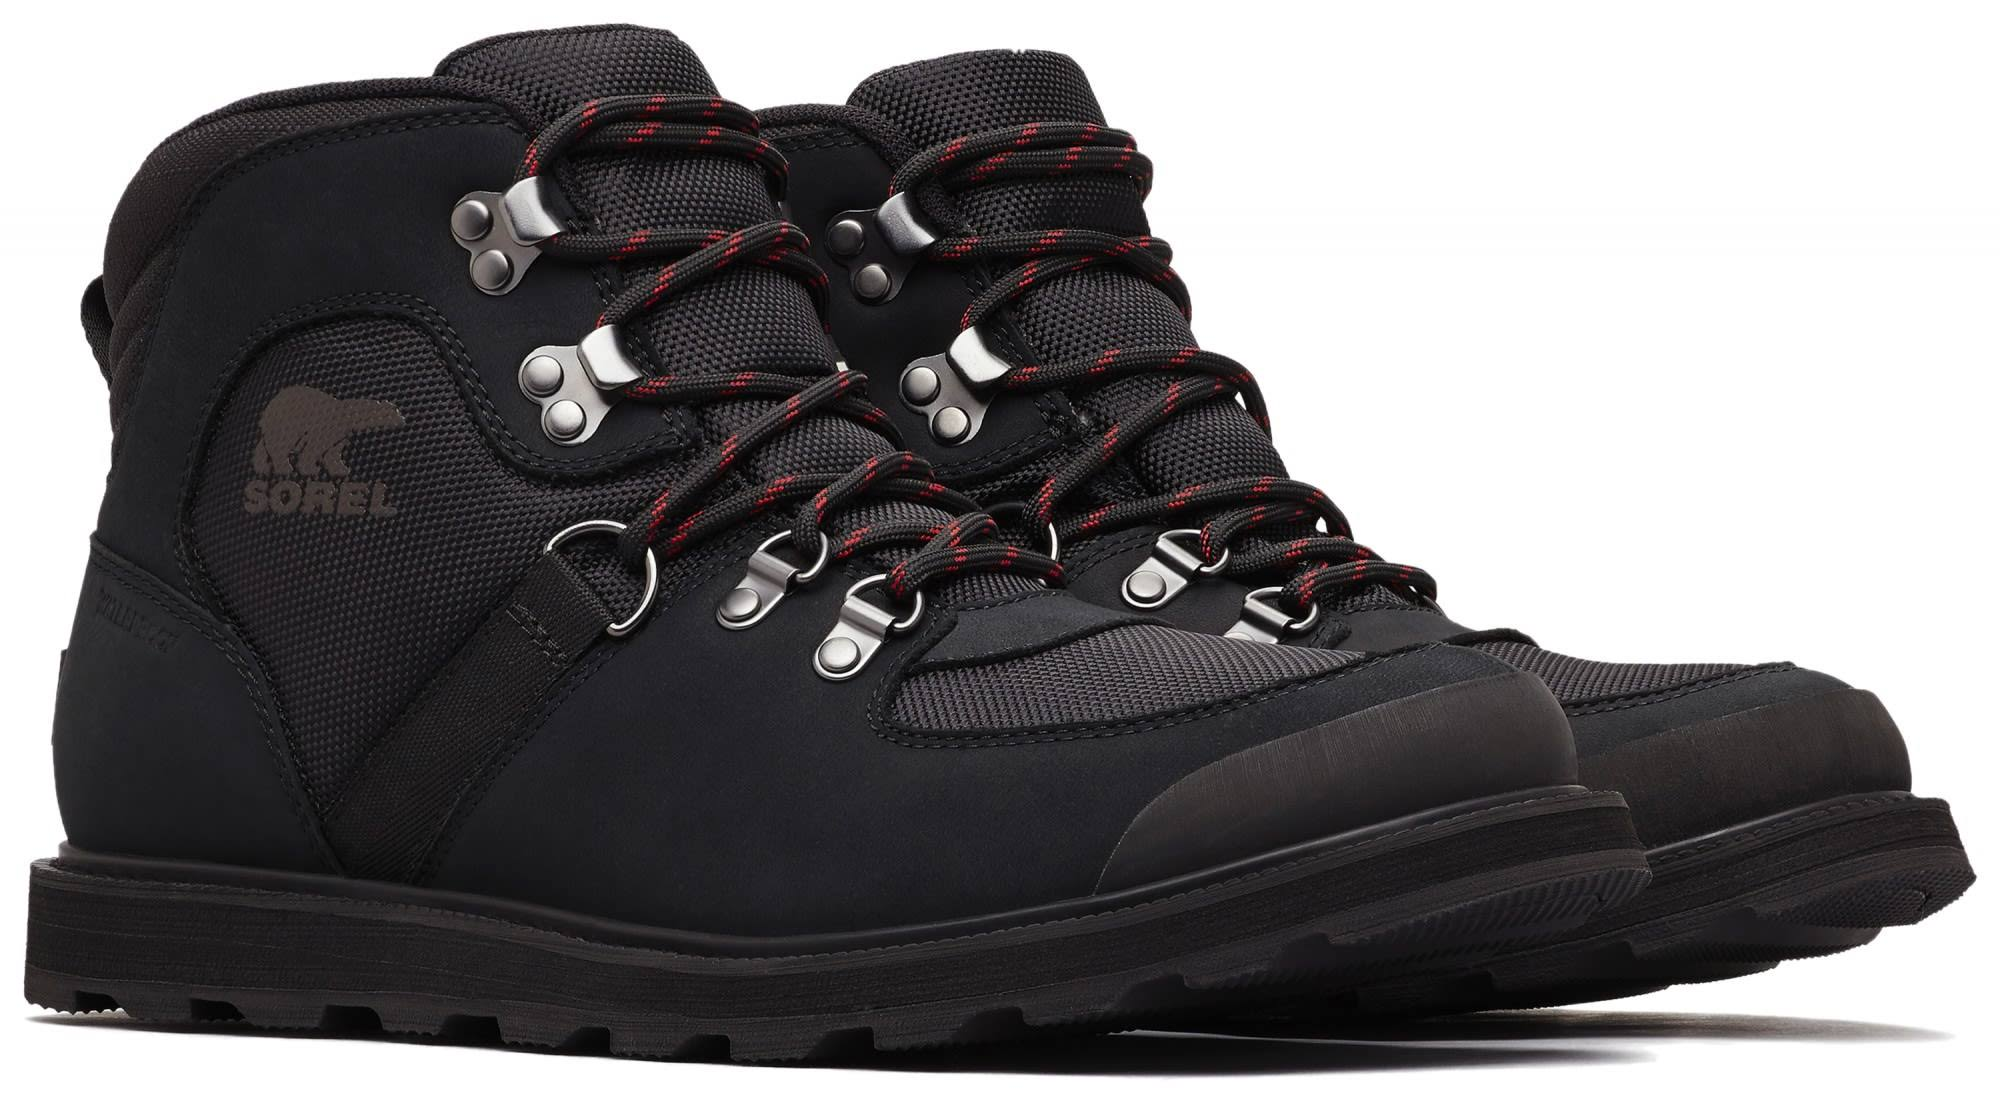 Boot Black Us 10 Men's Sorel Hiker Sport Madson Leather qxvISR